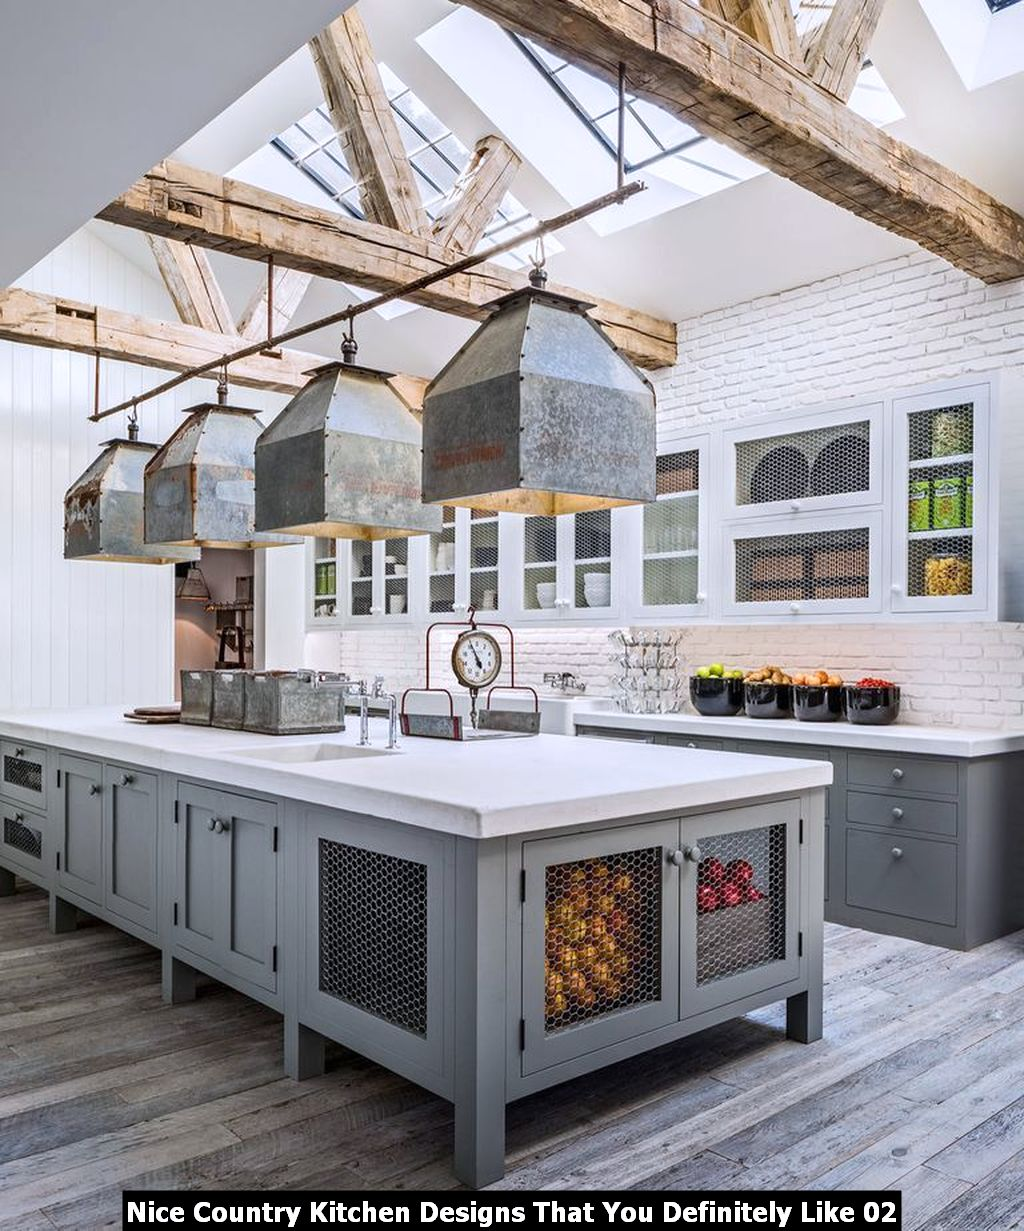 Nice Country Kitchen Designs That You Definitely Like 02